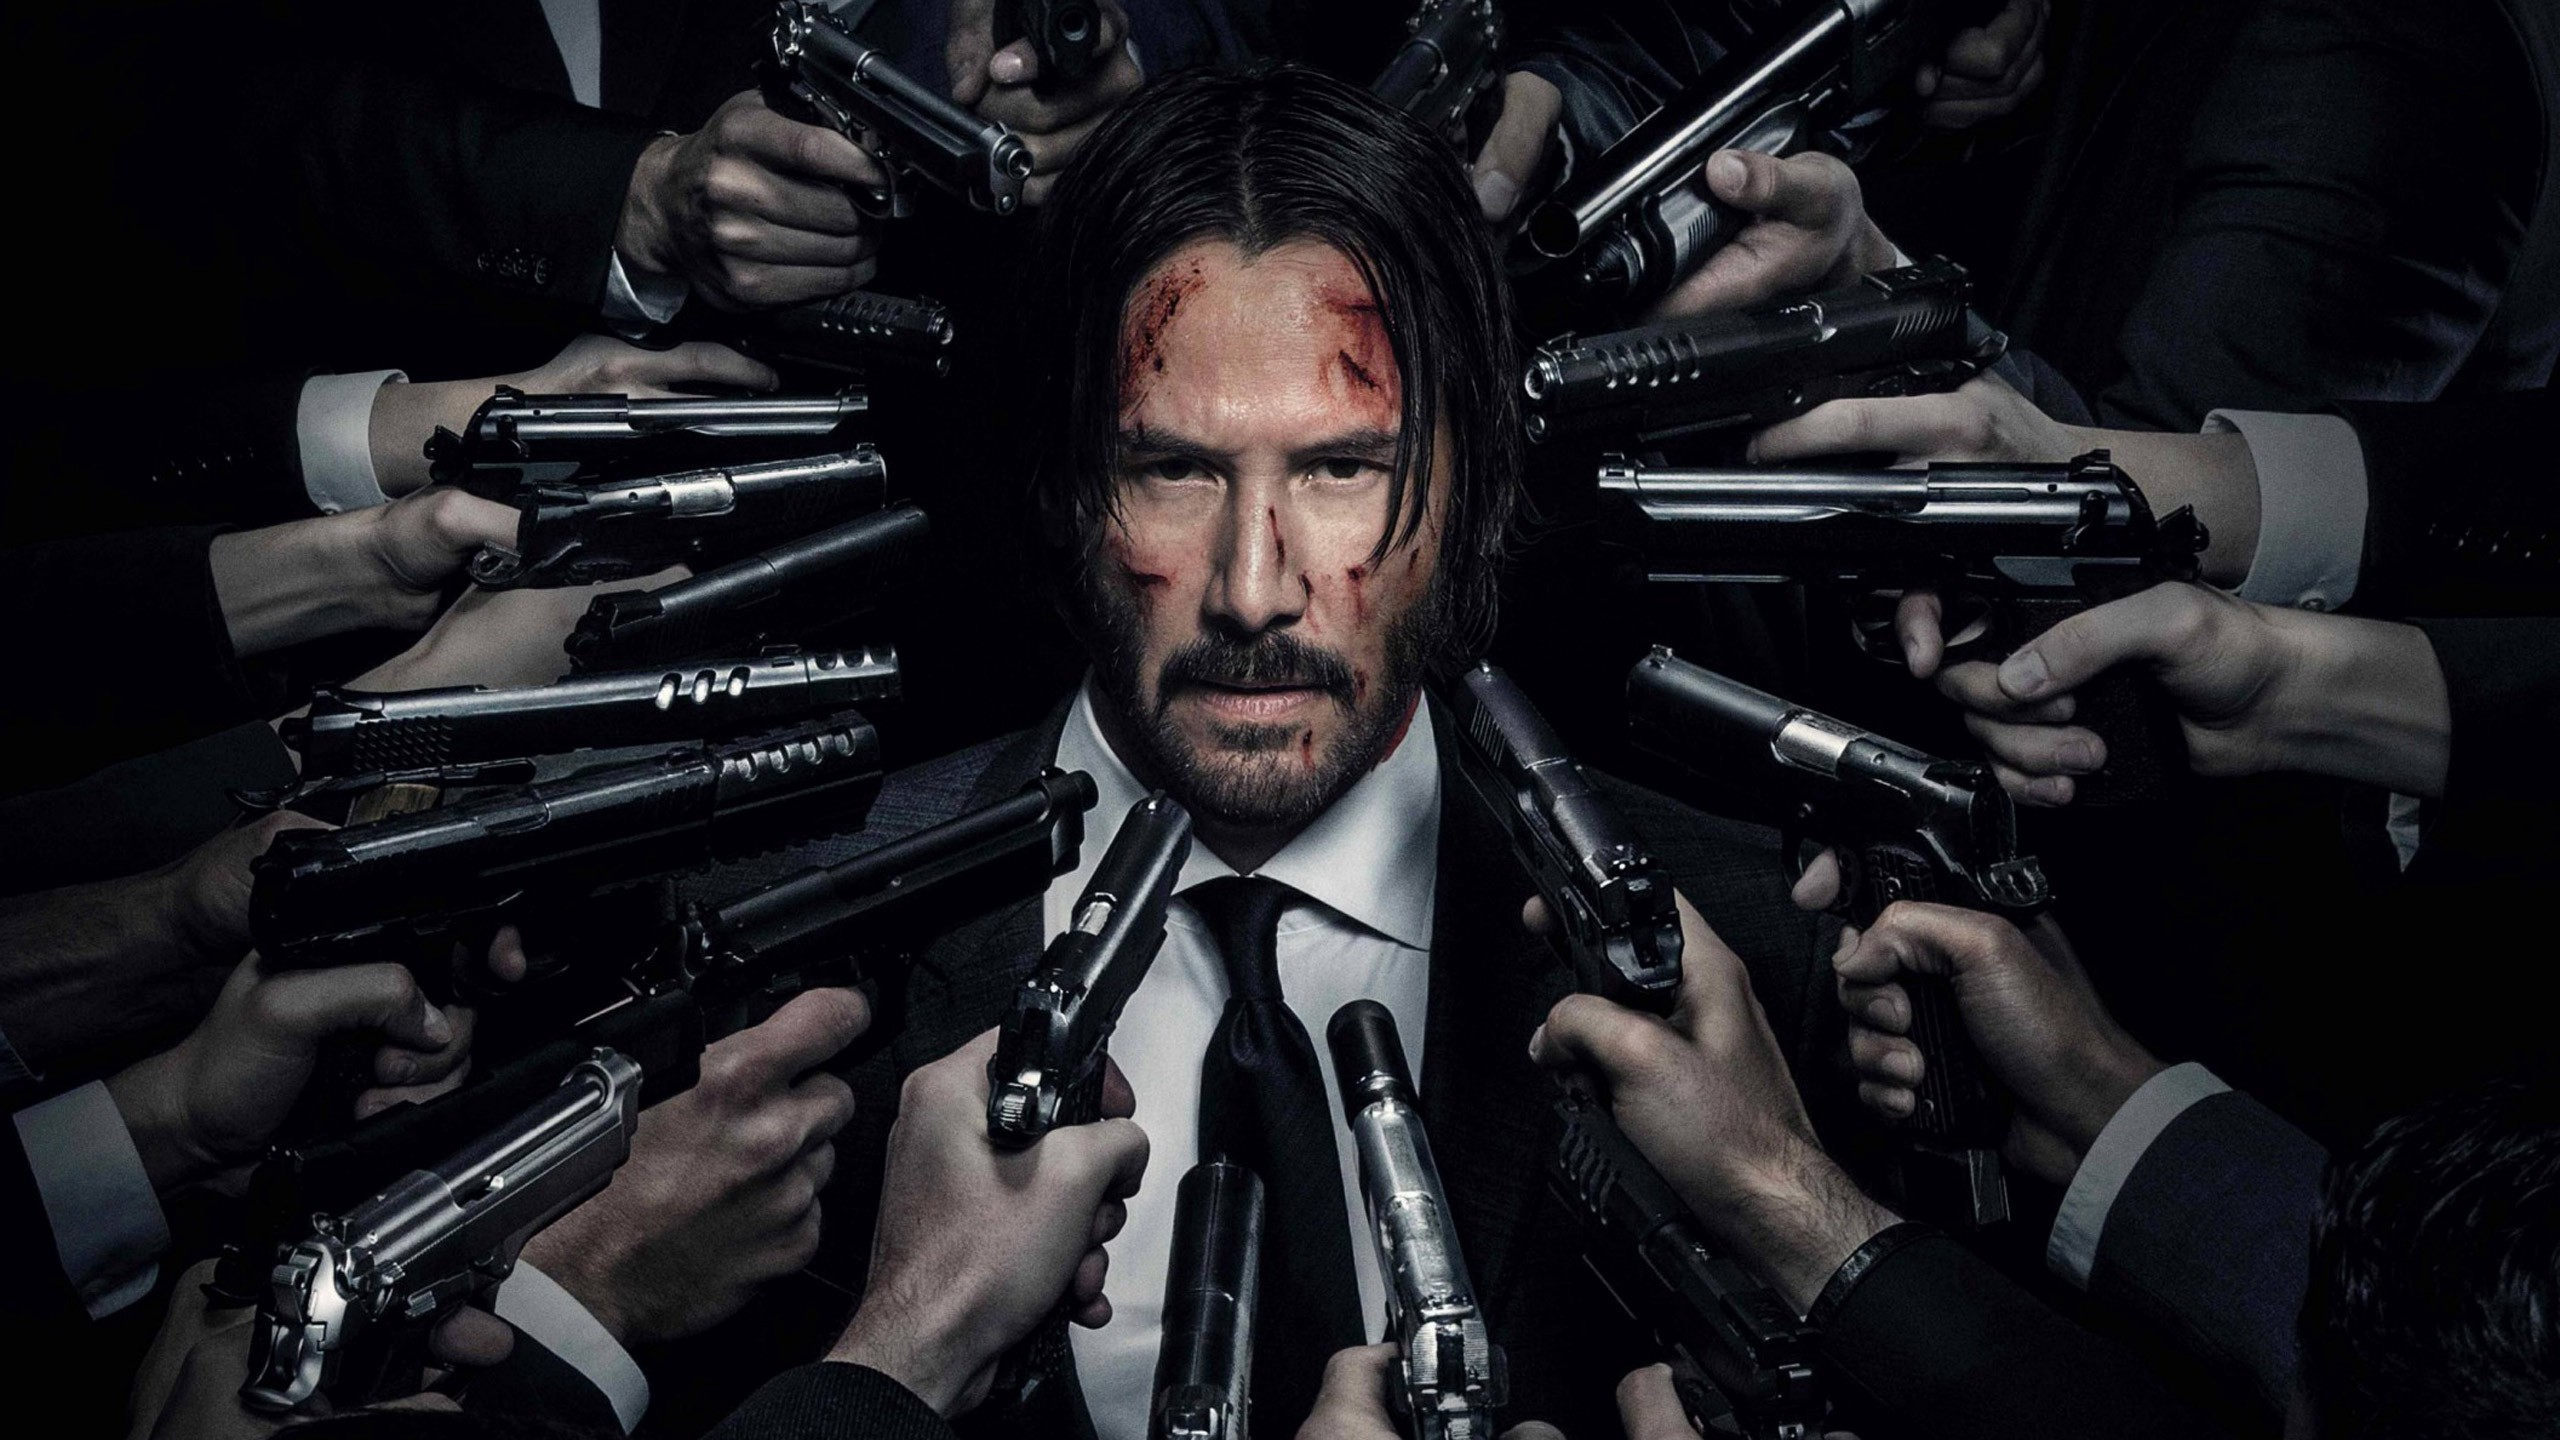 Keanu Reeves Returns To His Deadly Past In John Wick Chapter 2